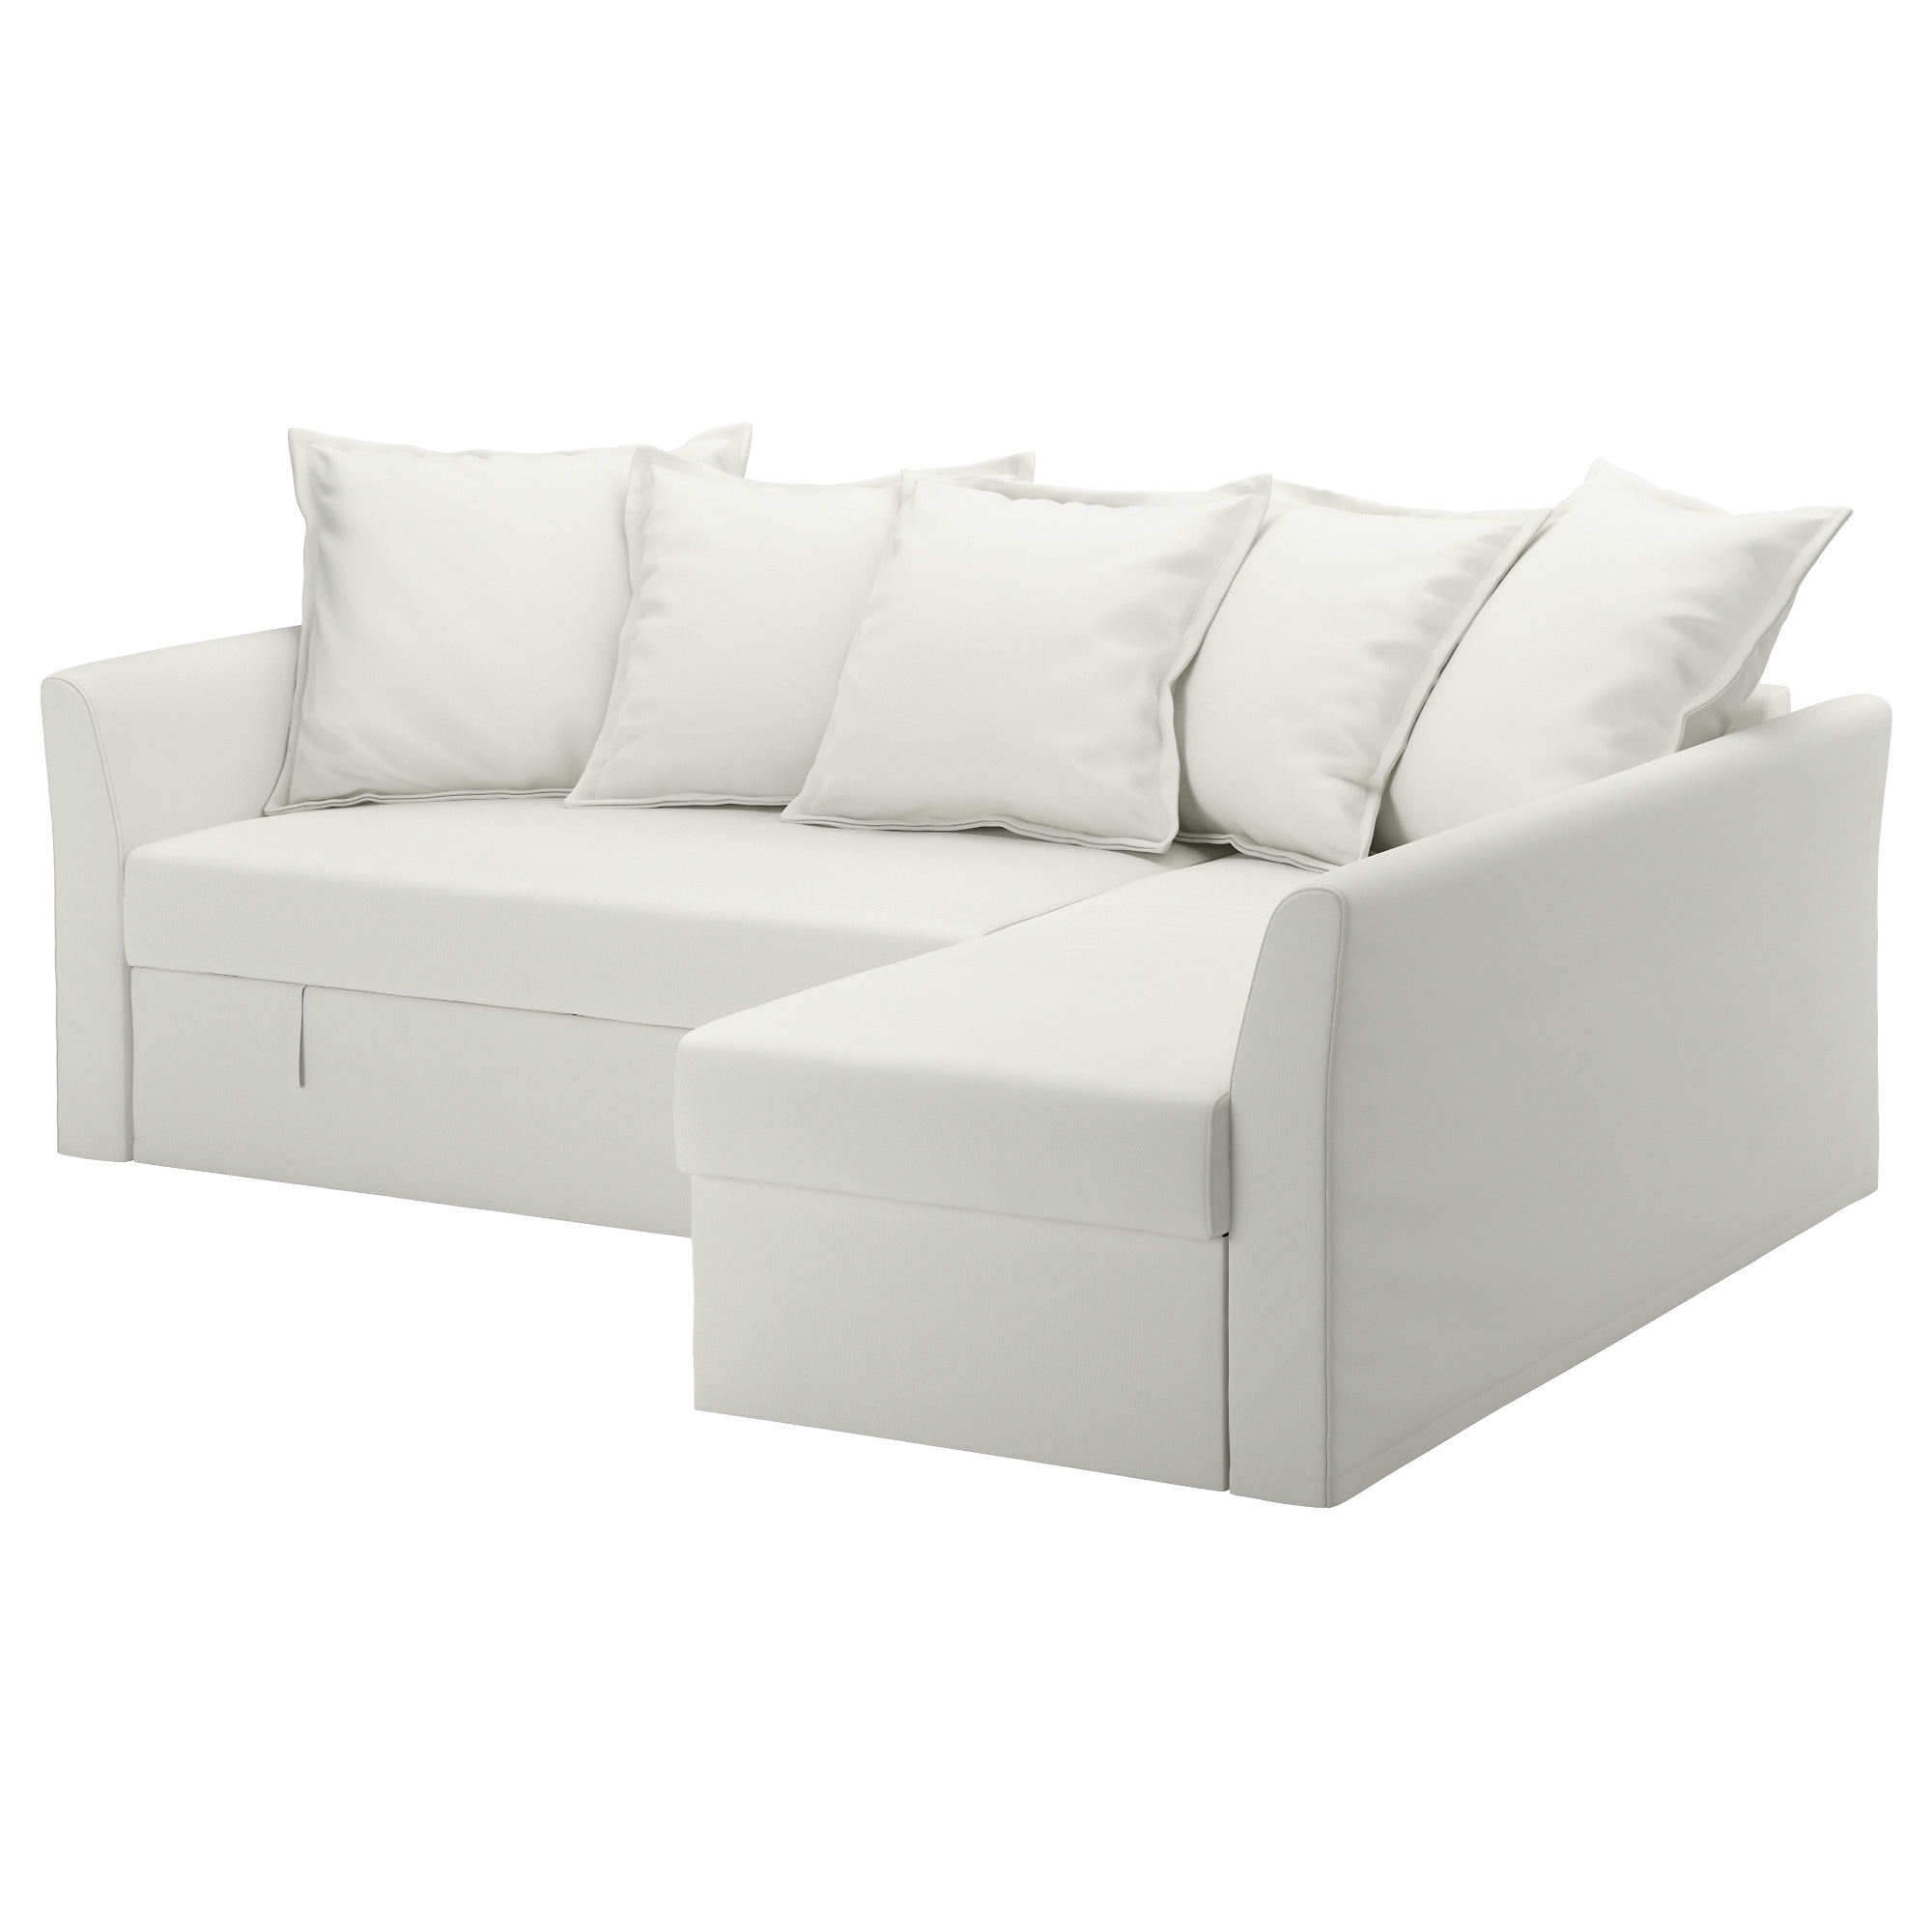 HOLMSUND Sleeper Sectional, 3 Seat, Ransta White Height Including Back  Cushions: 37